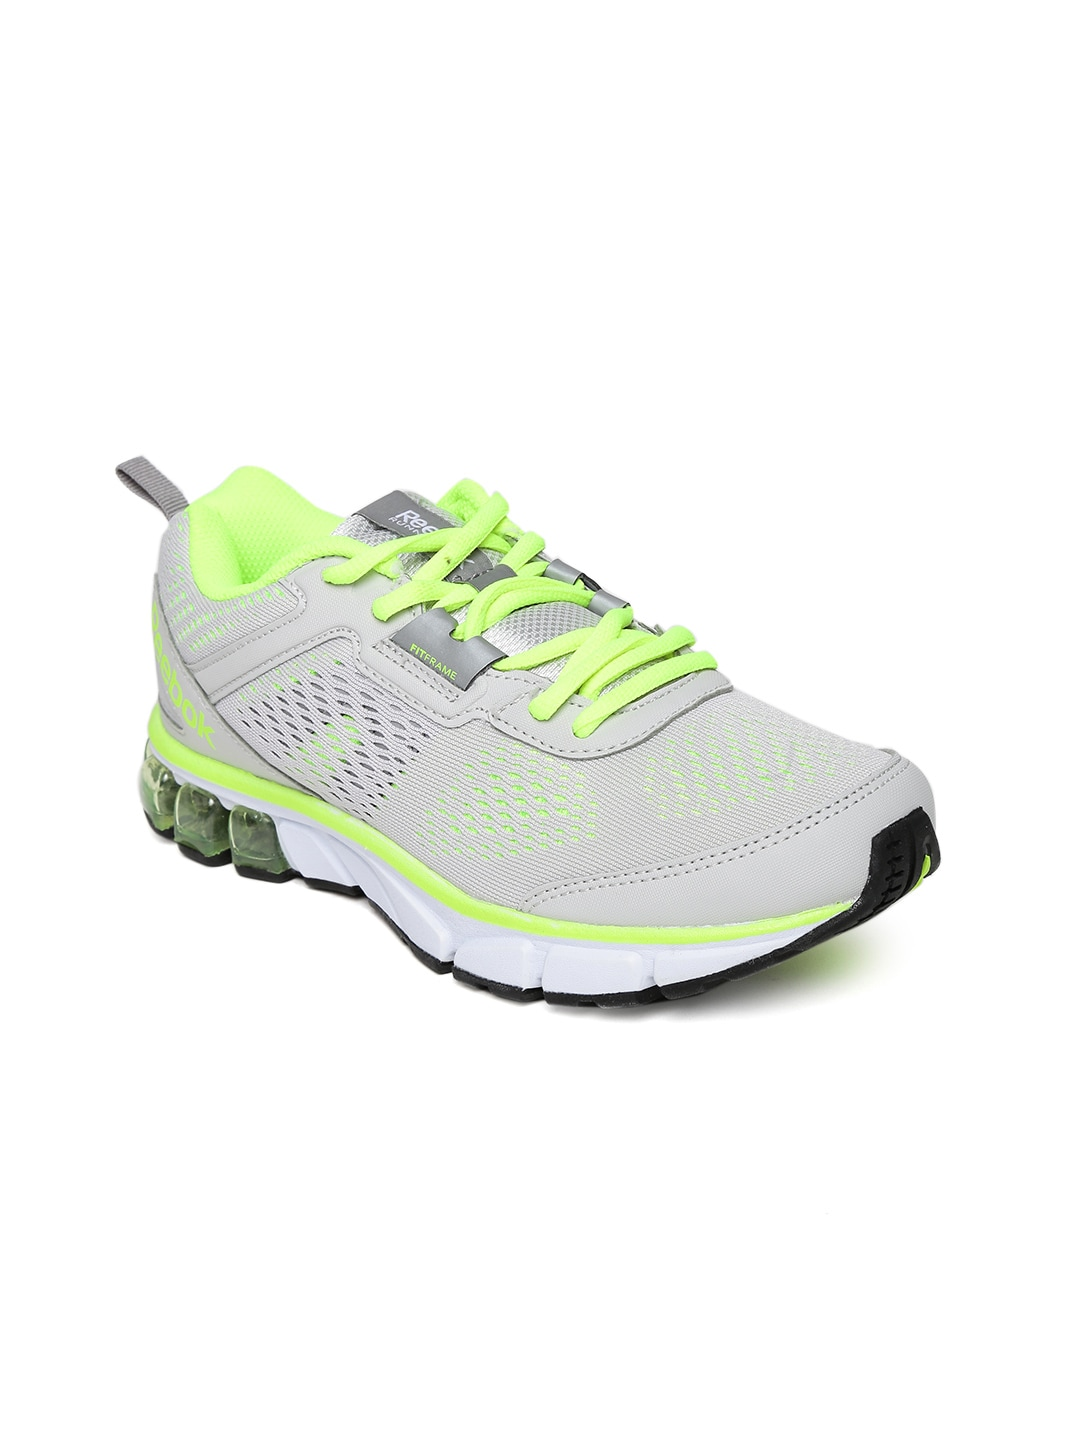 a4a725d00c5a44 Reebok v65934 Women Grey Jet Dashride Running Shoes- Price in India